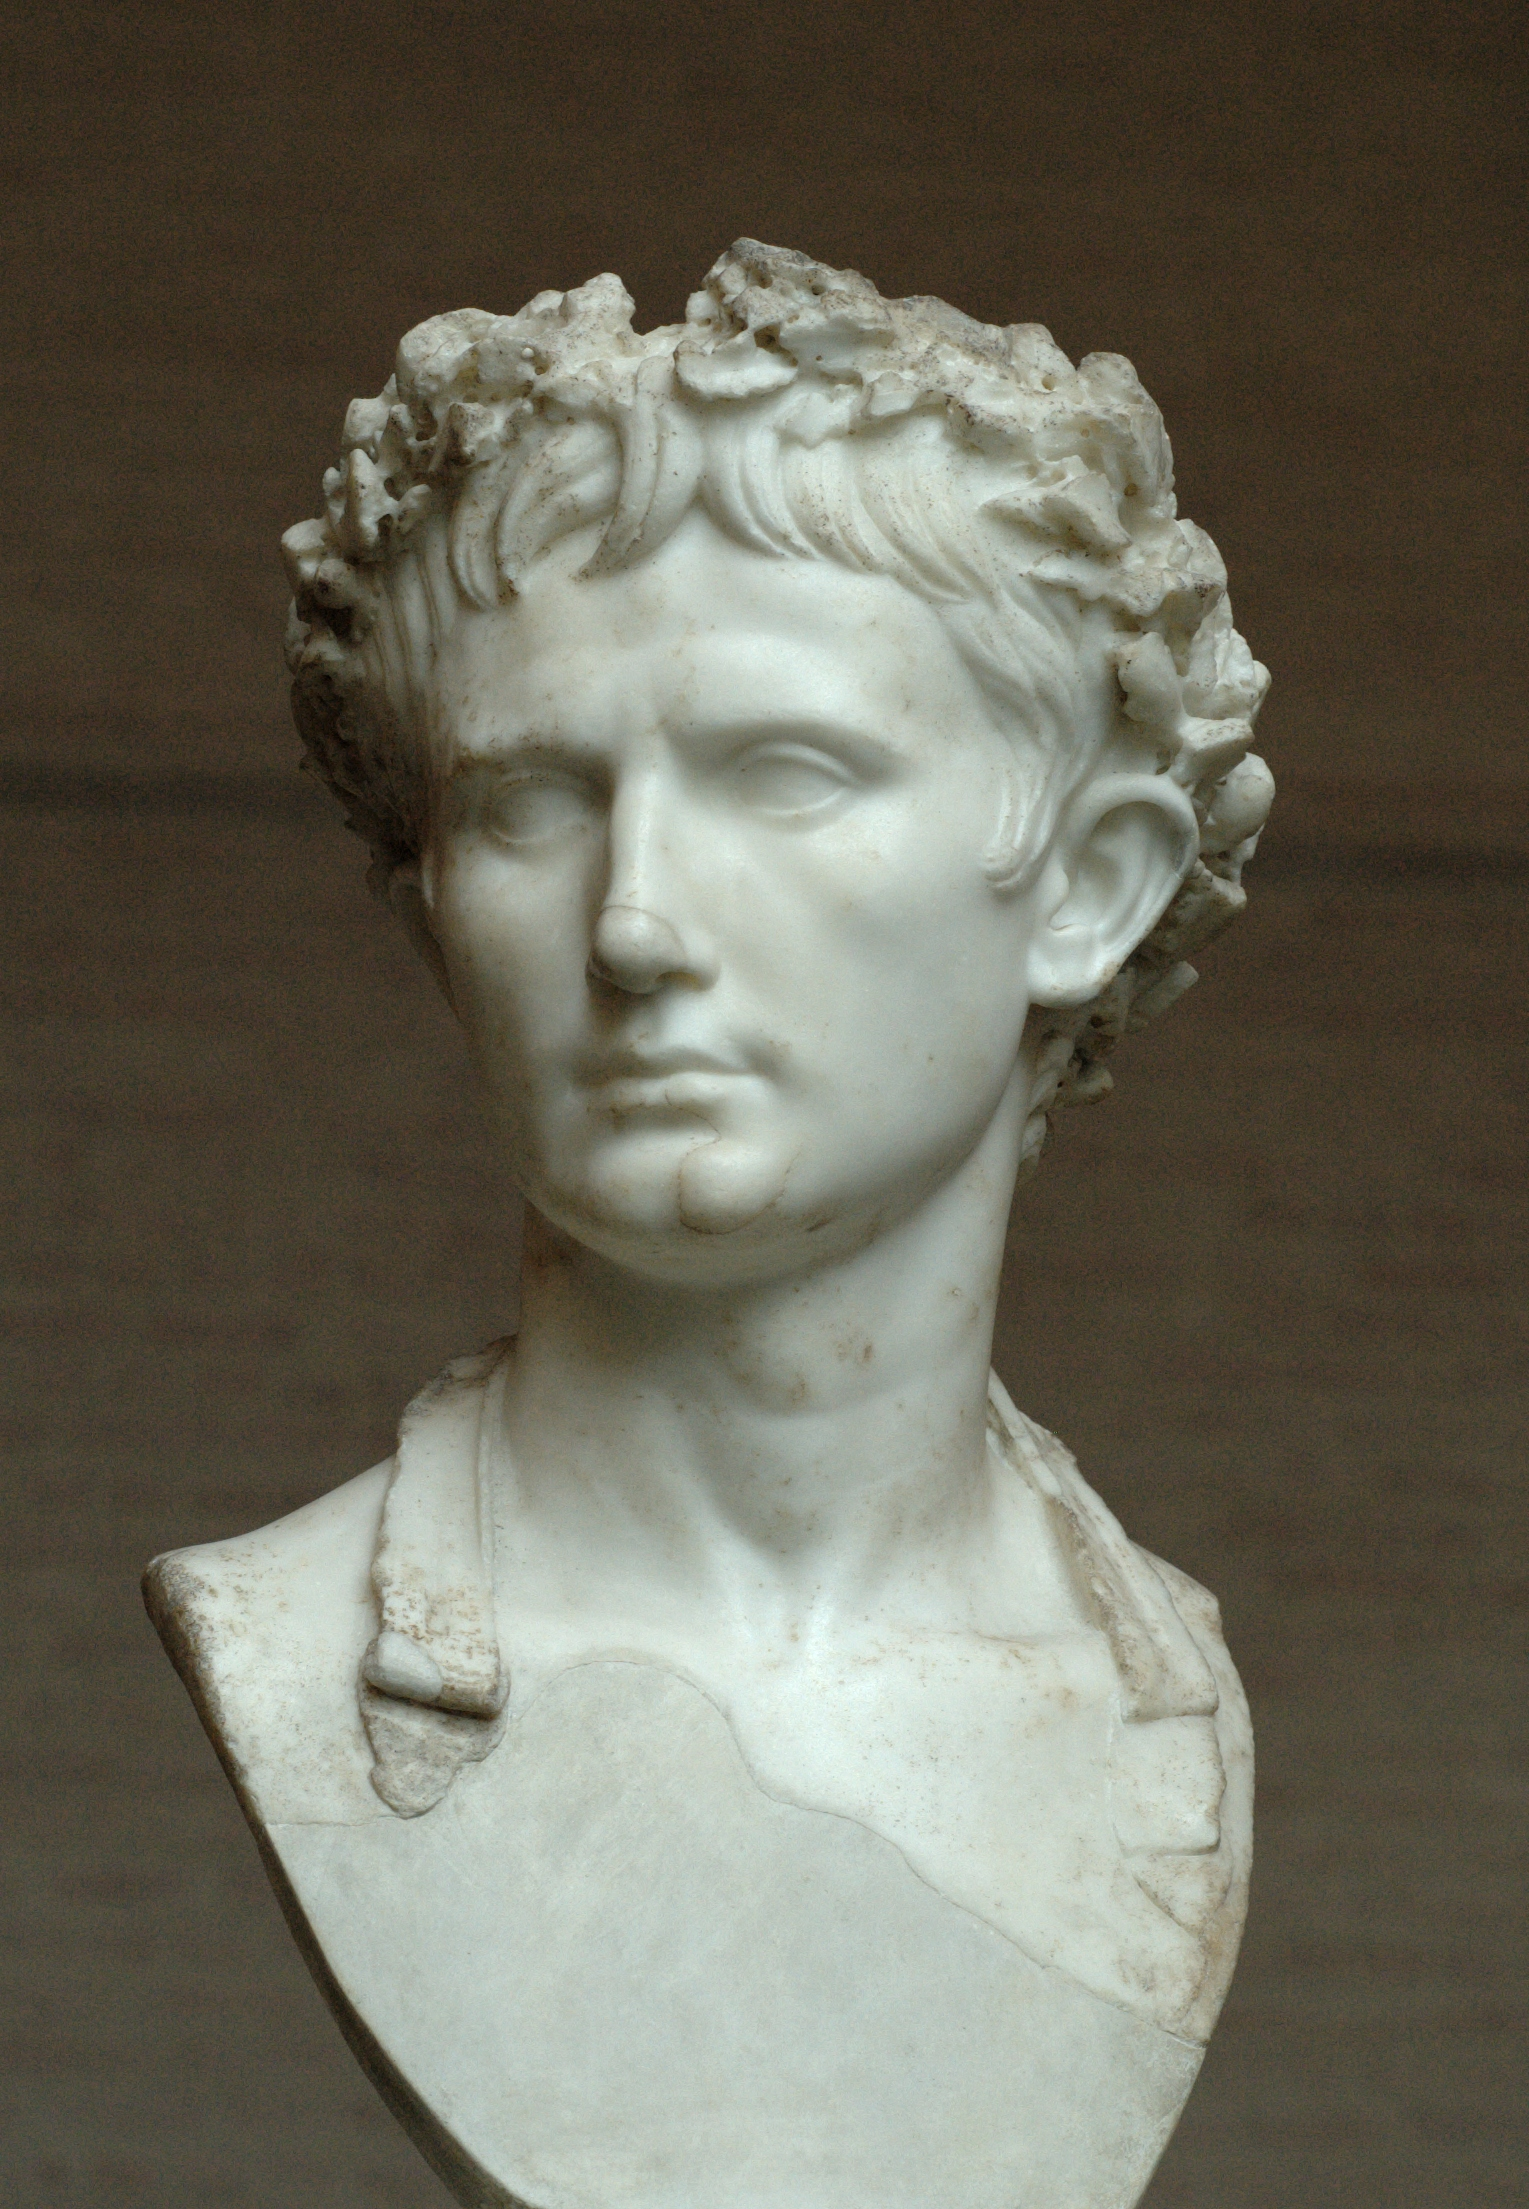 Image of Augustus wearing the Corona Civica